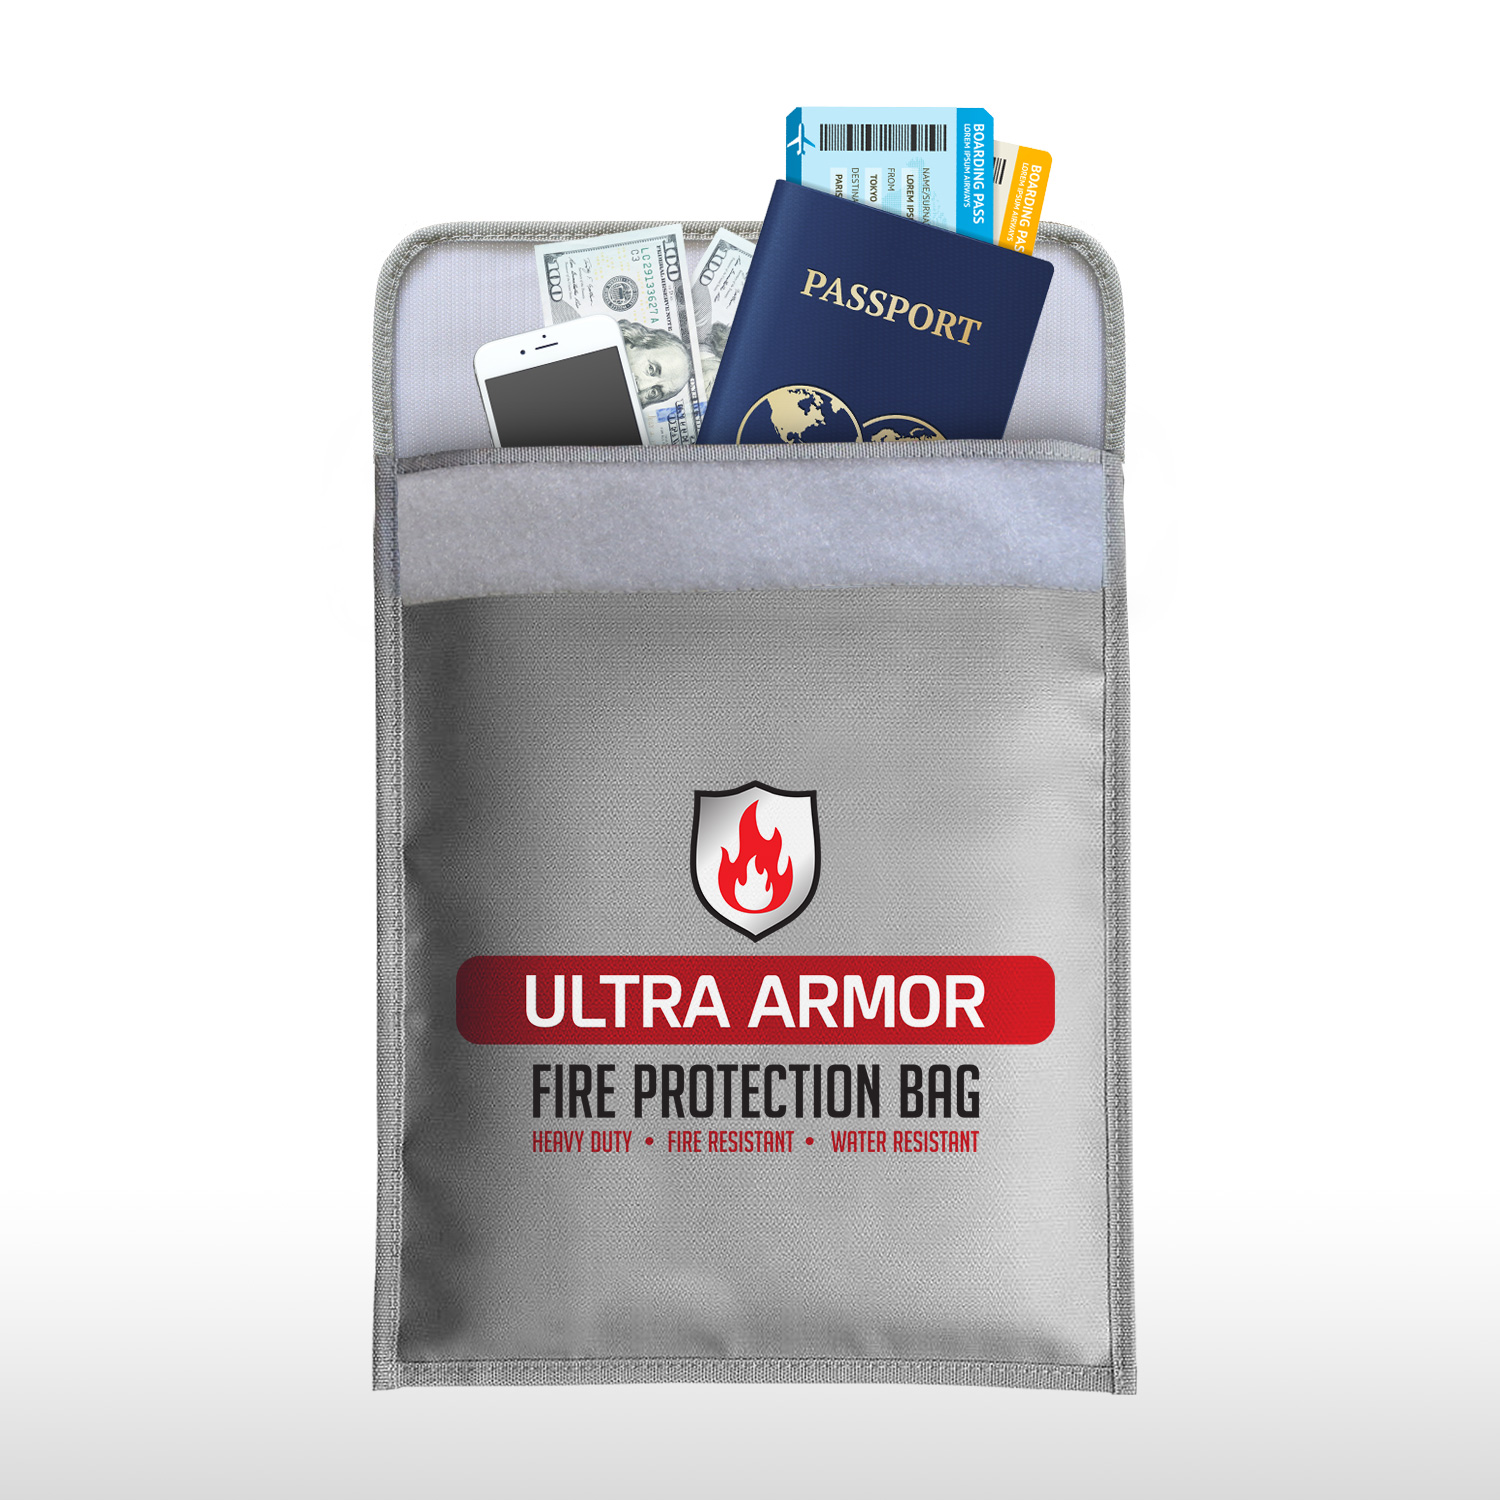 Ultra Armor Fireproof Document Bag A Perfect Safe Accessory